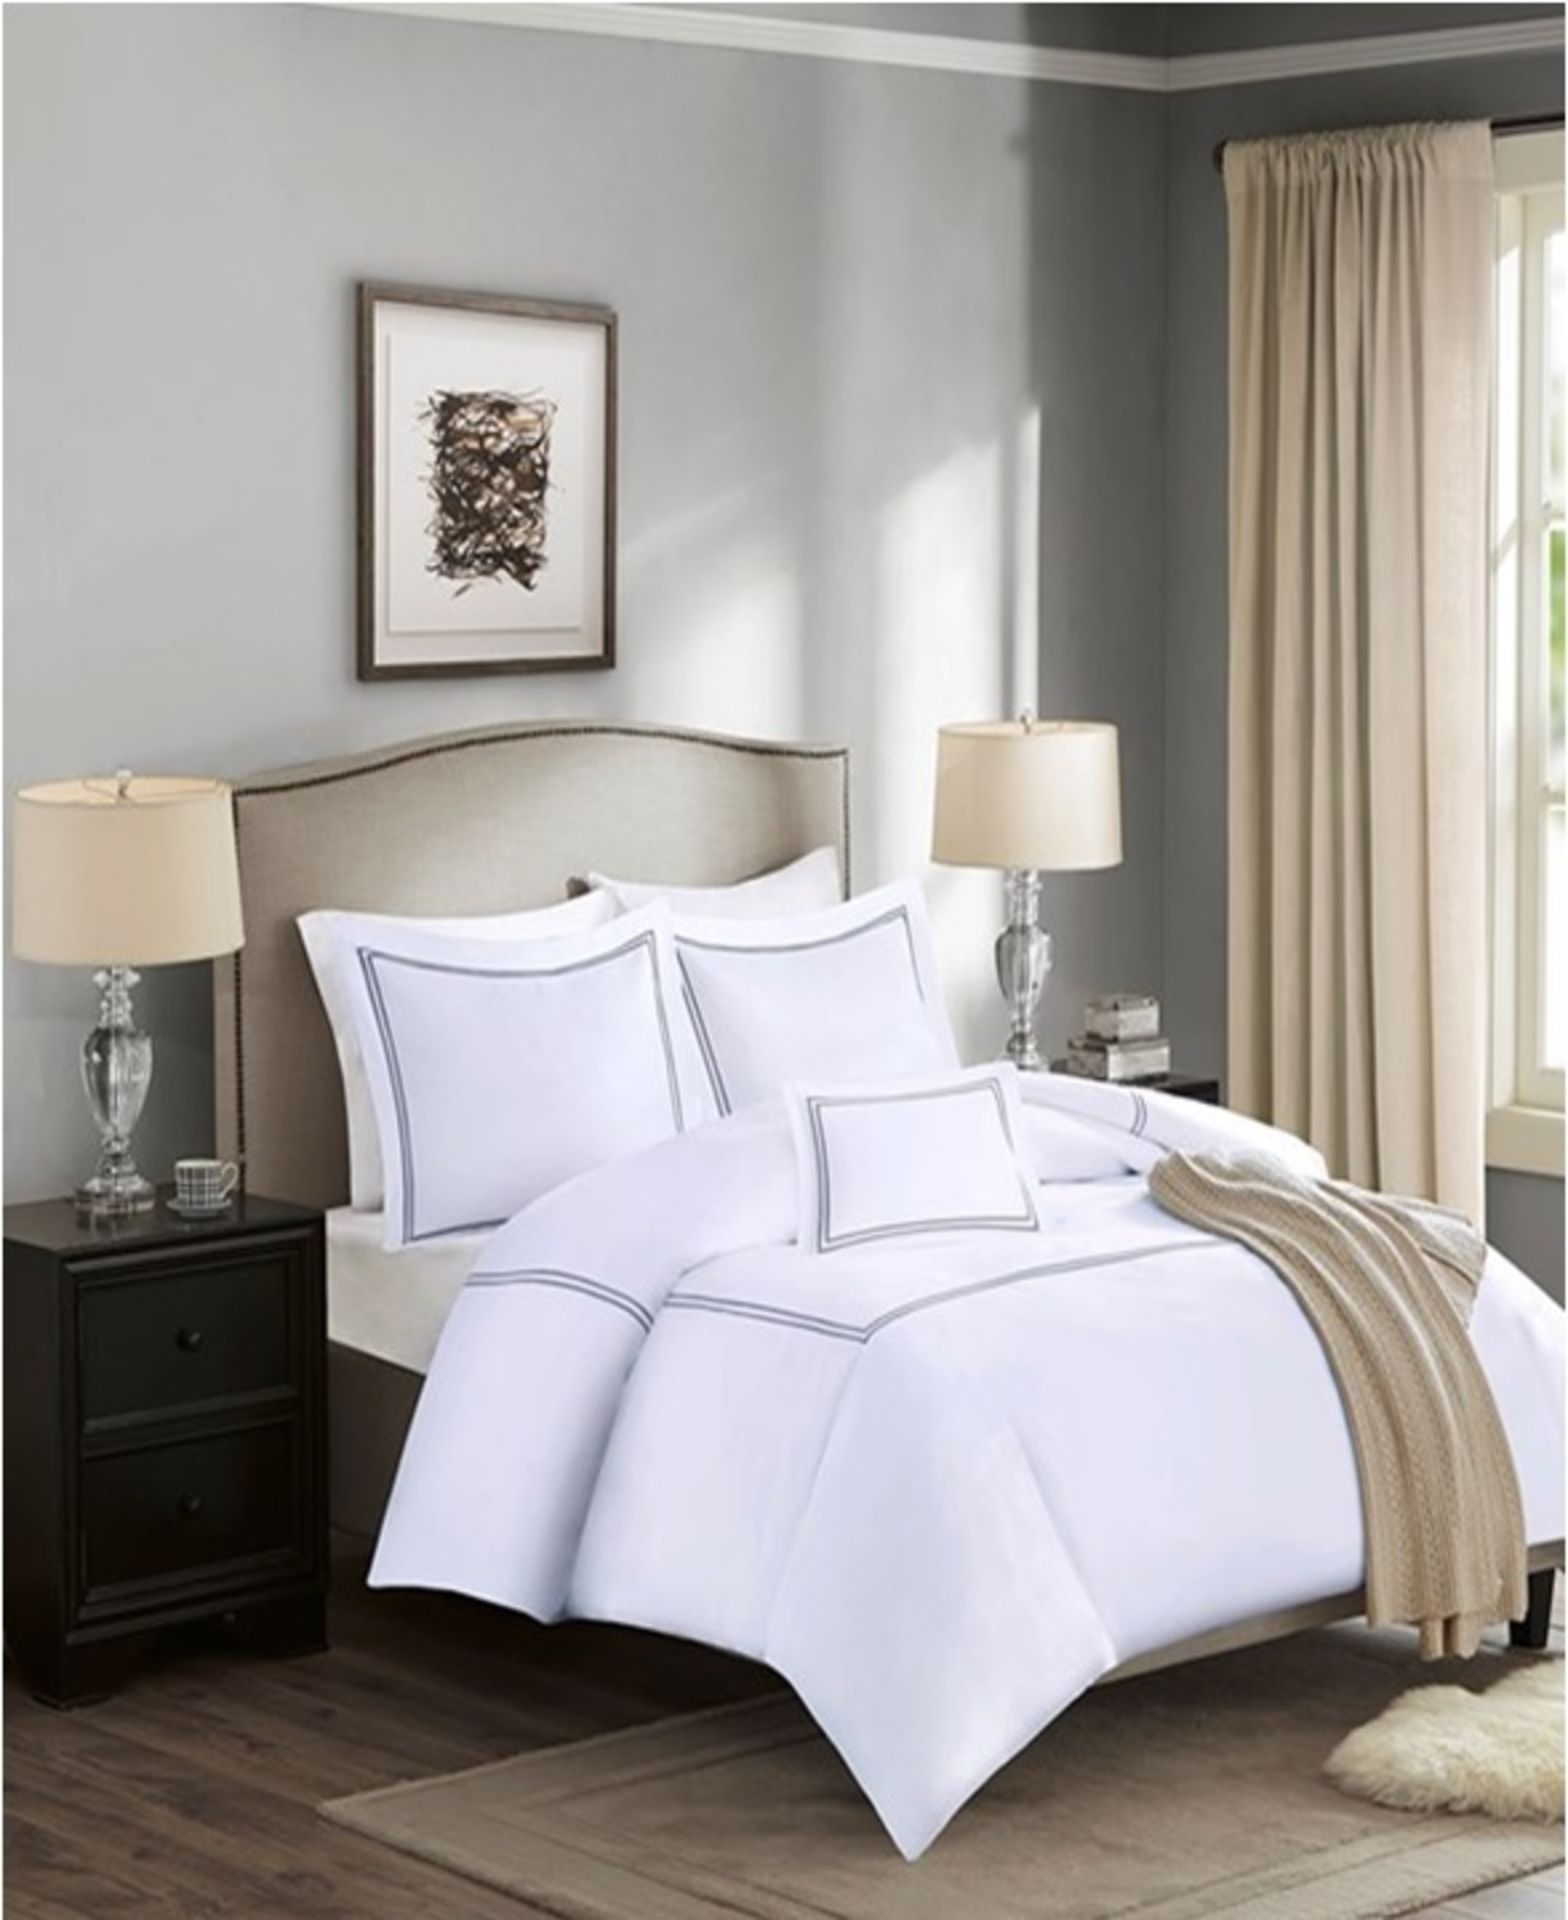 Lot 140 - 1 x Madison Park Luxury Collection Single Duvet Set White - Product Code MP12-0197UK (Brand New -